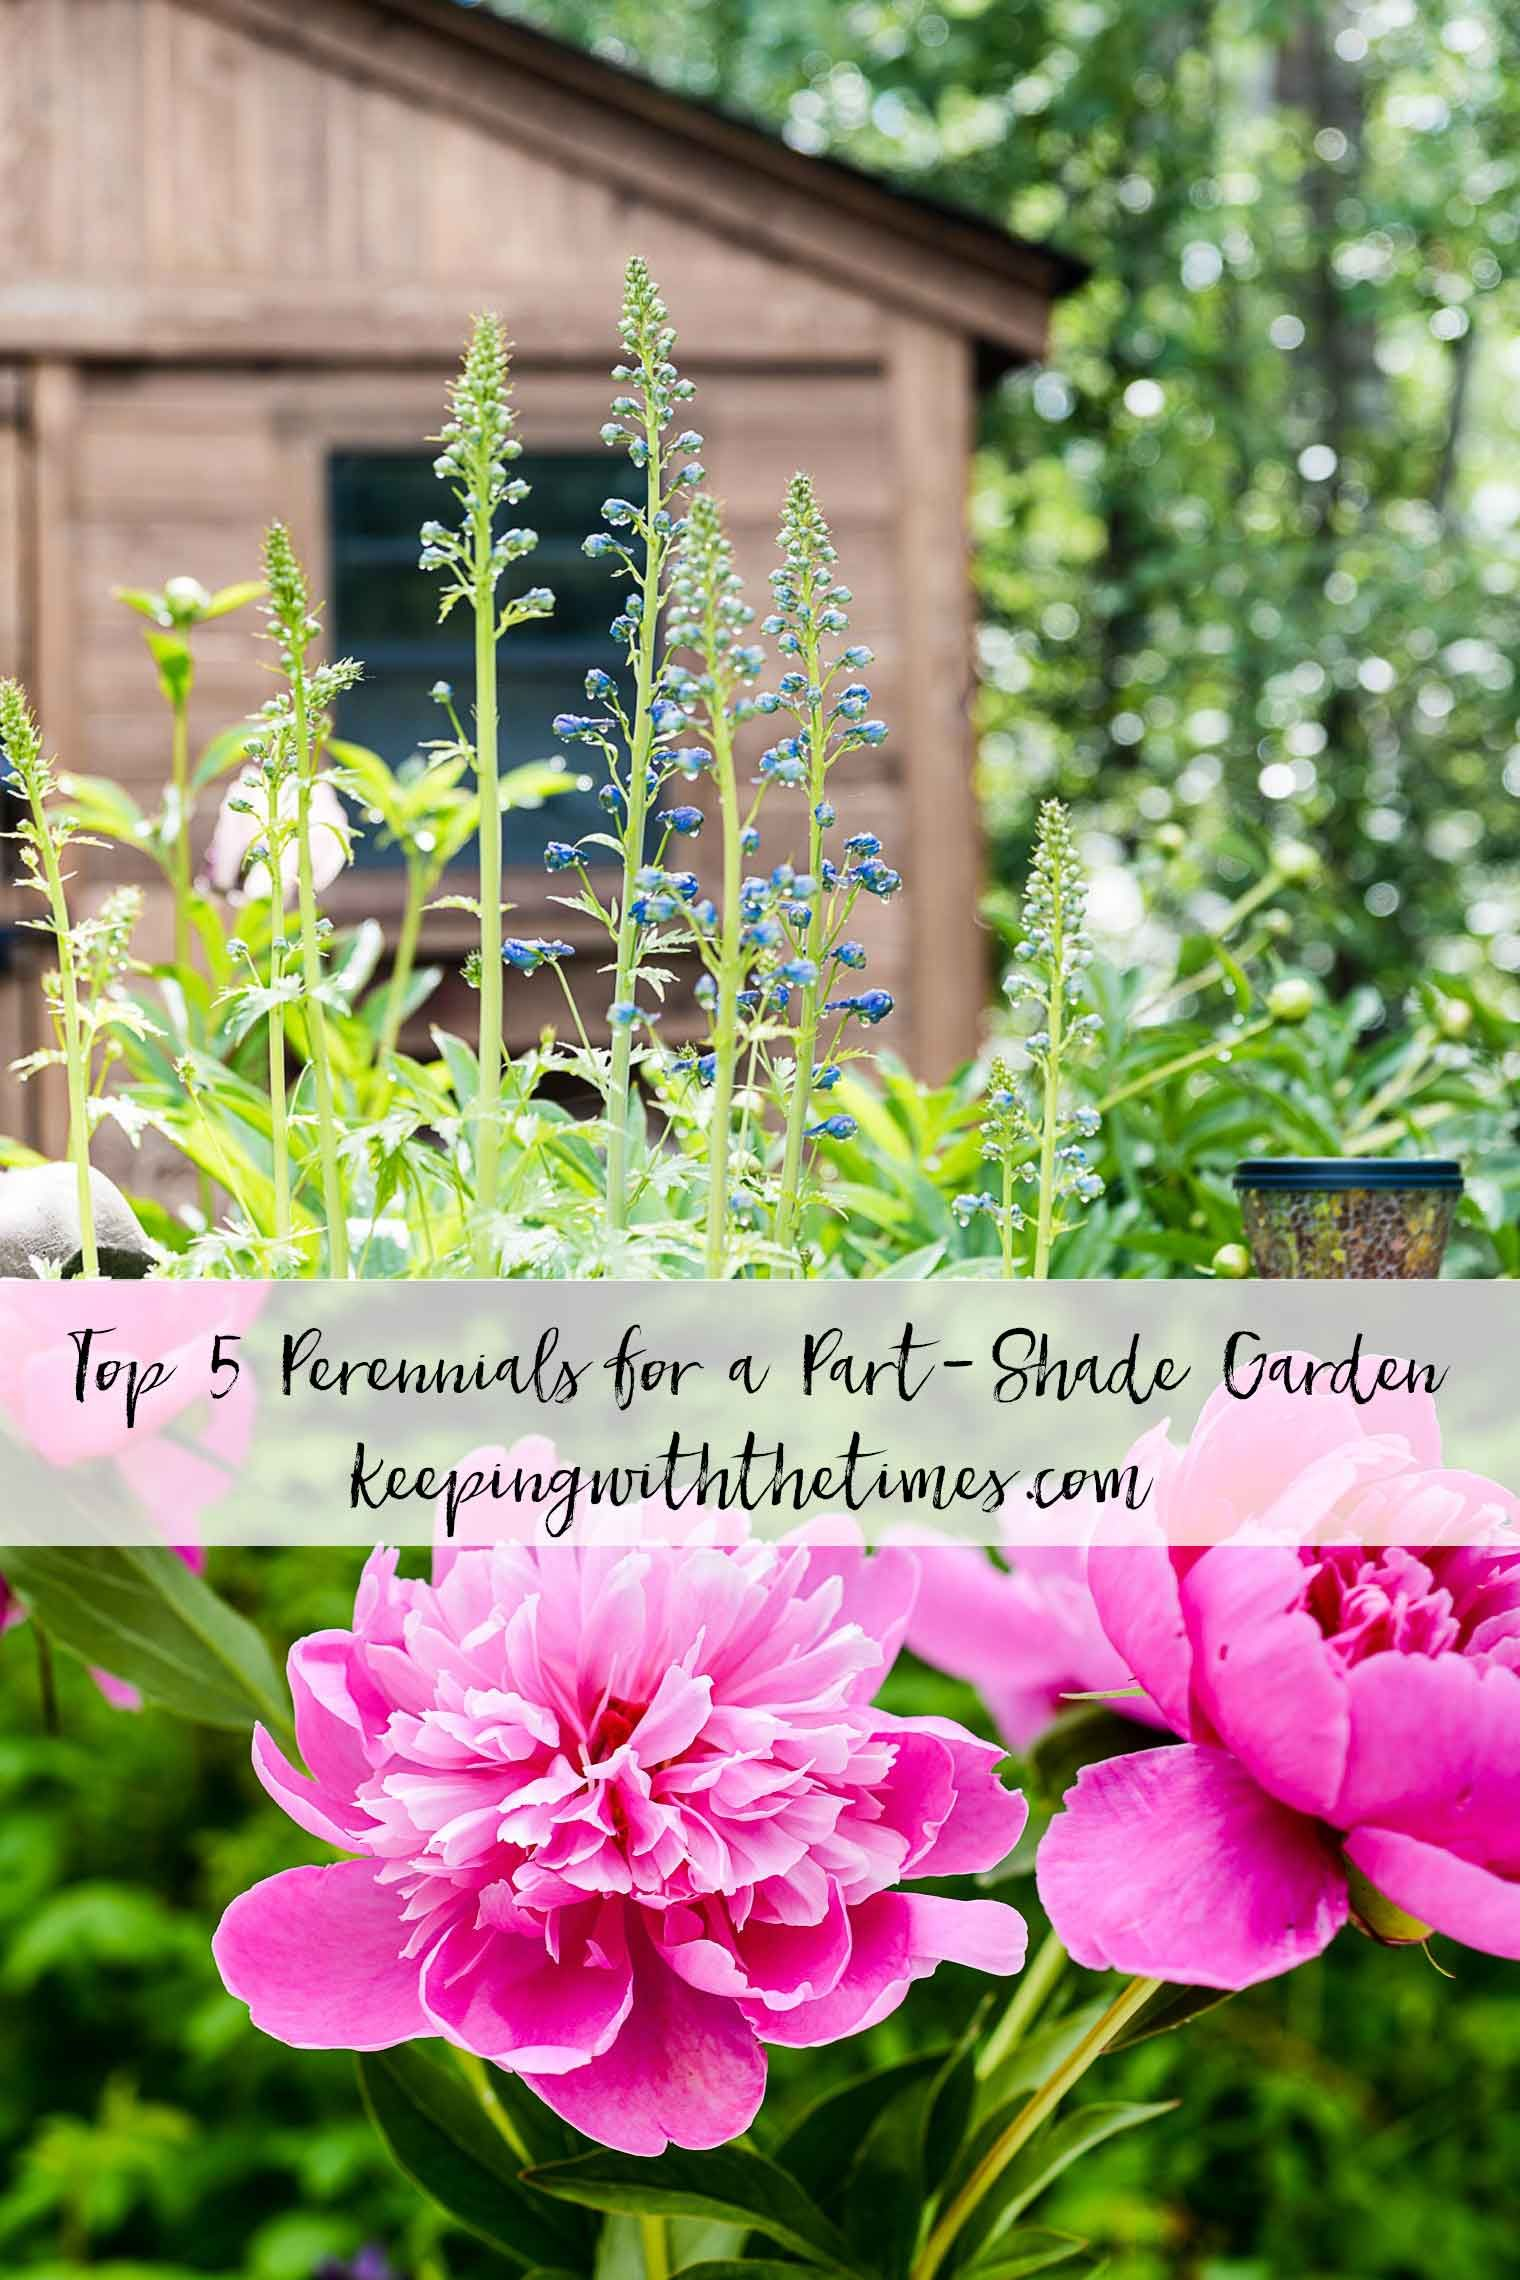 Top 5 Perennials for a Part-Shade Garden; my choices might surprise you! #shadeperennials